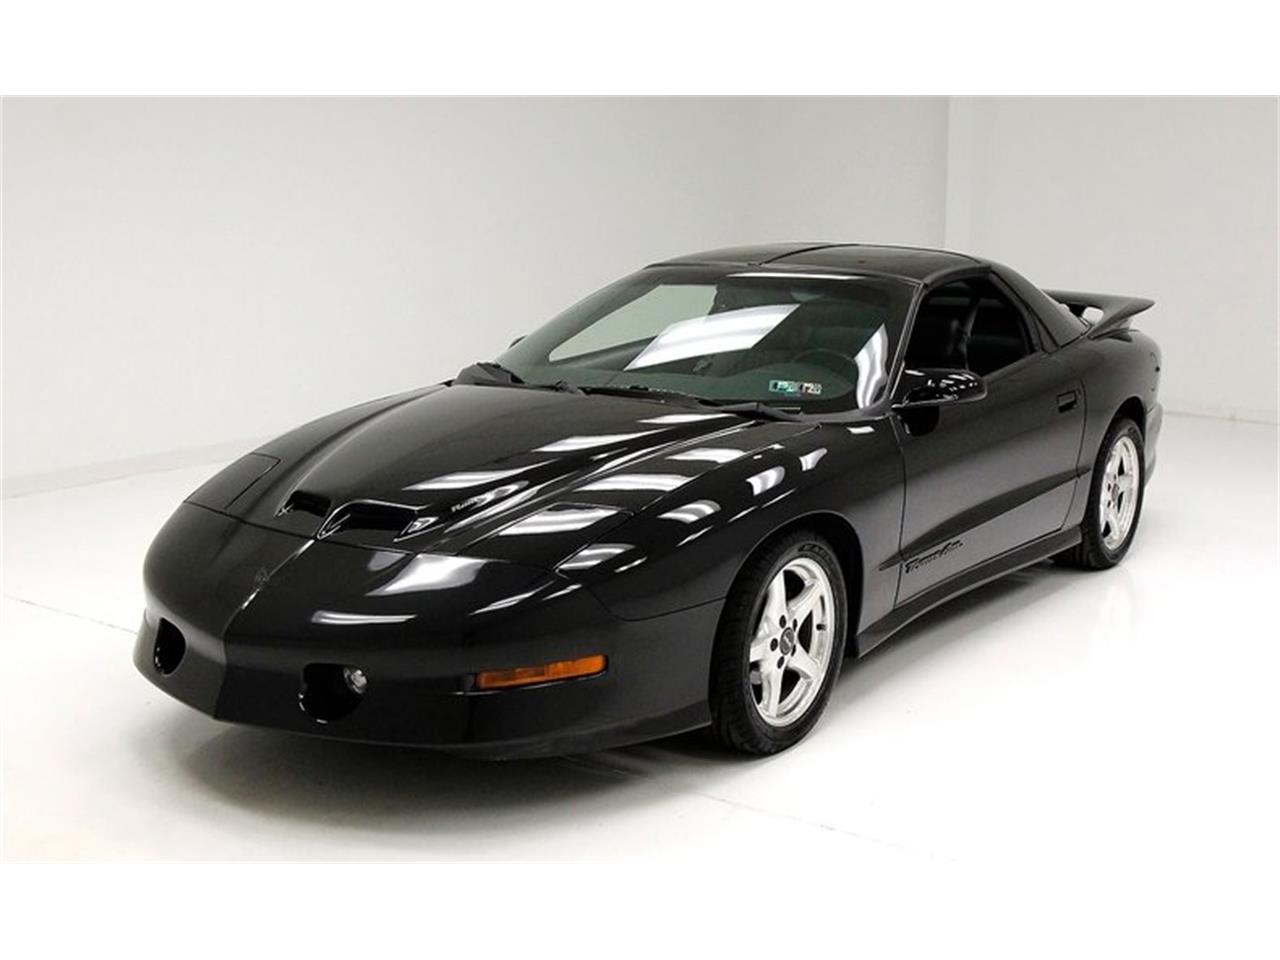 Large Picture of '97 Pontiac Firebird Trans Am located in Morgantown Pennsylvania - $14,900.00 - QCUN